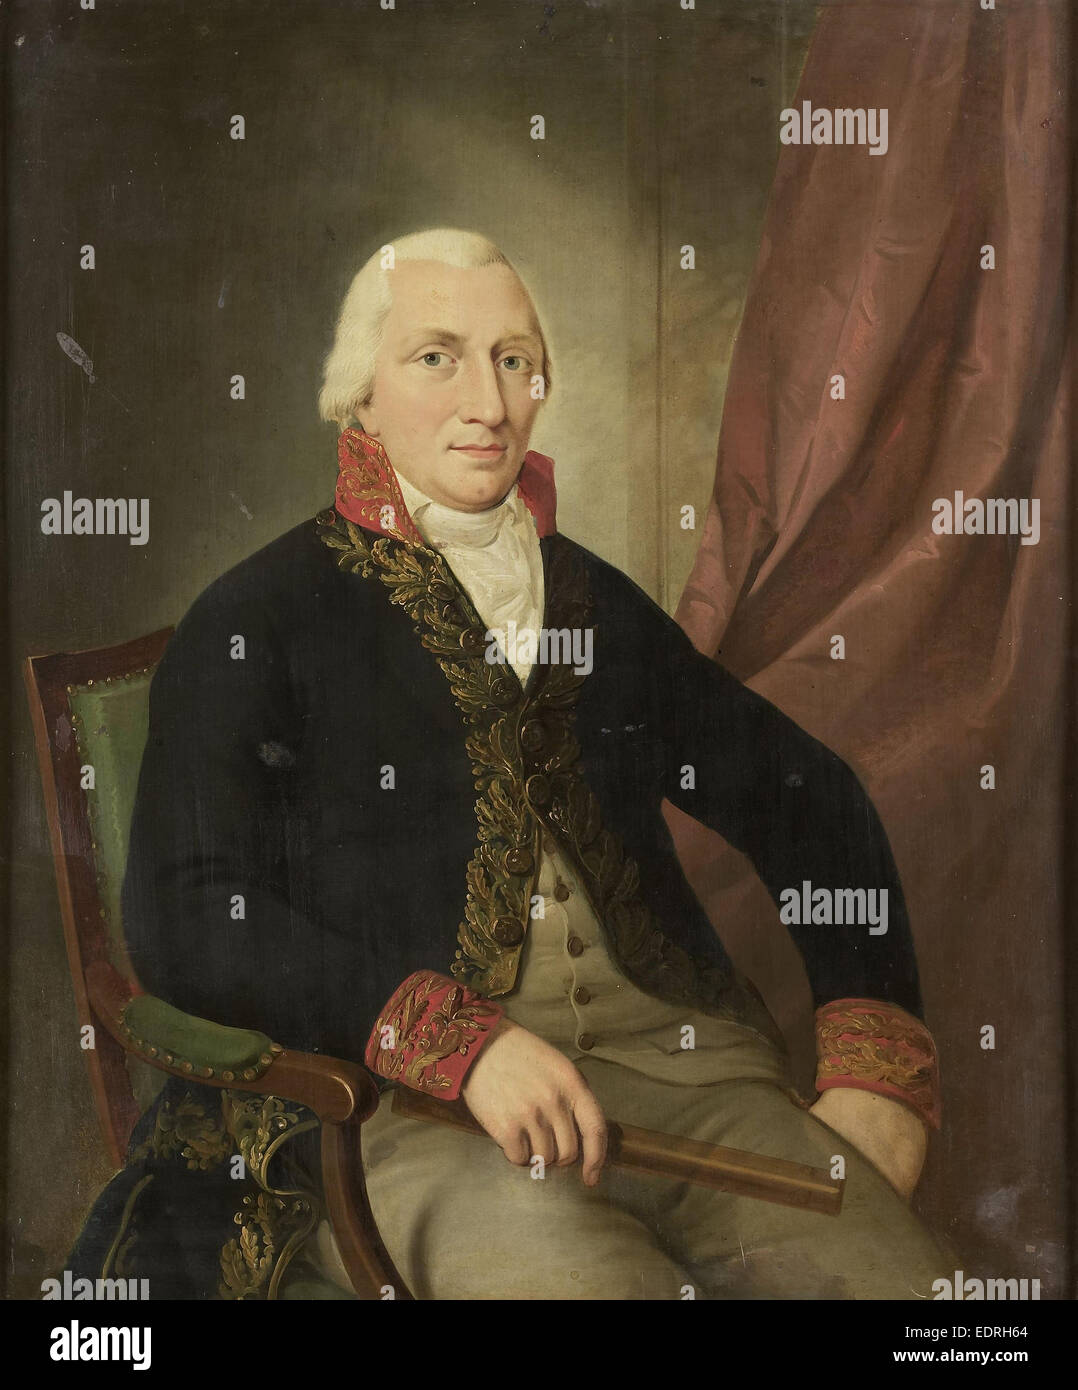 Portrait of Albertus Henricus Wiese, Governor-General of the Dutch East Indies, attributed to Adriaan de Lelie, - Stock Image